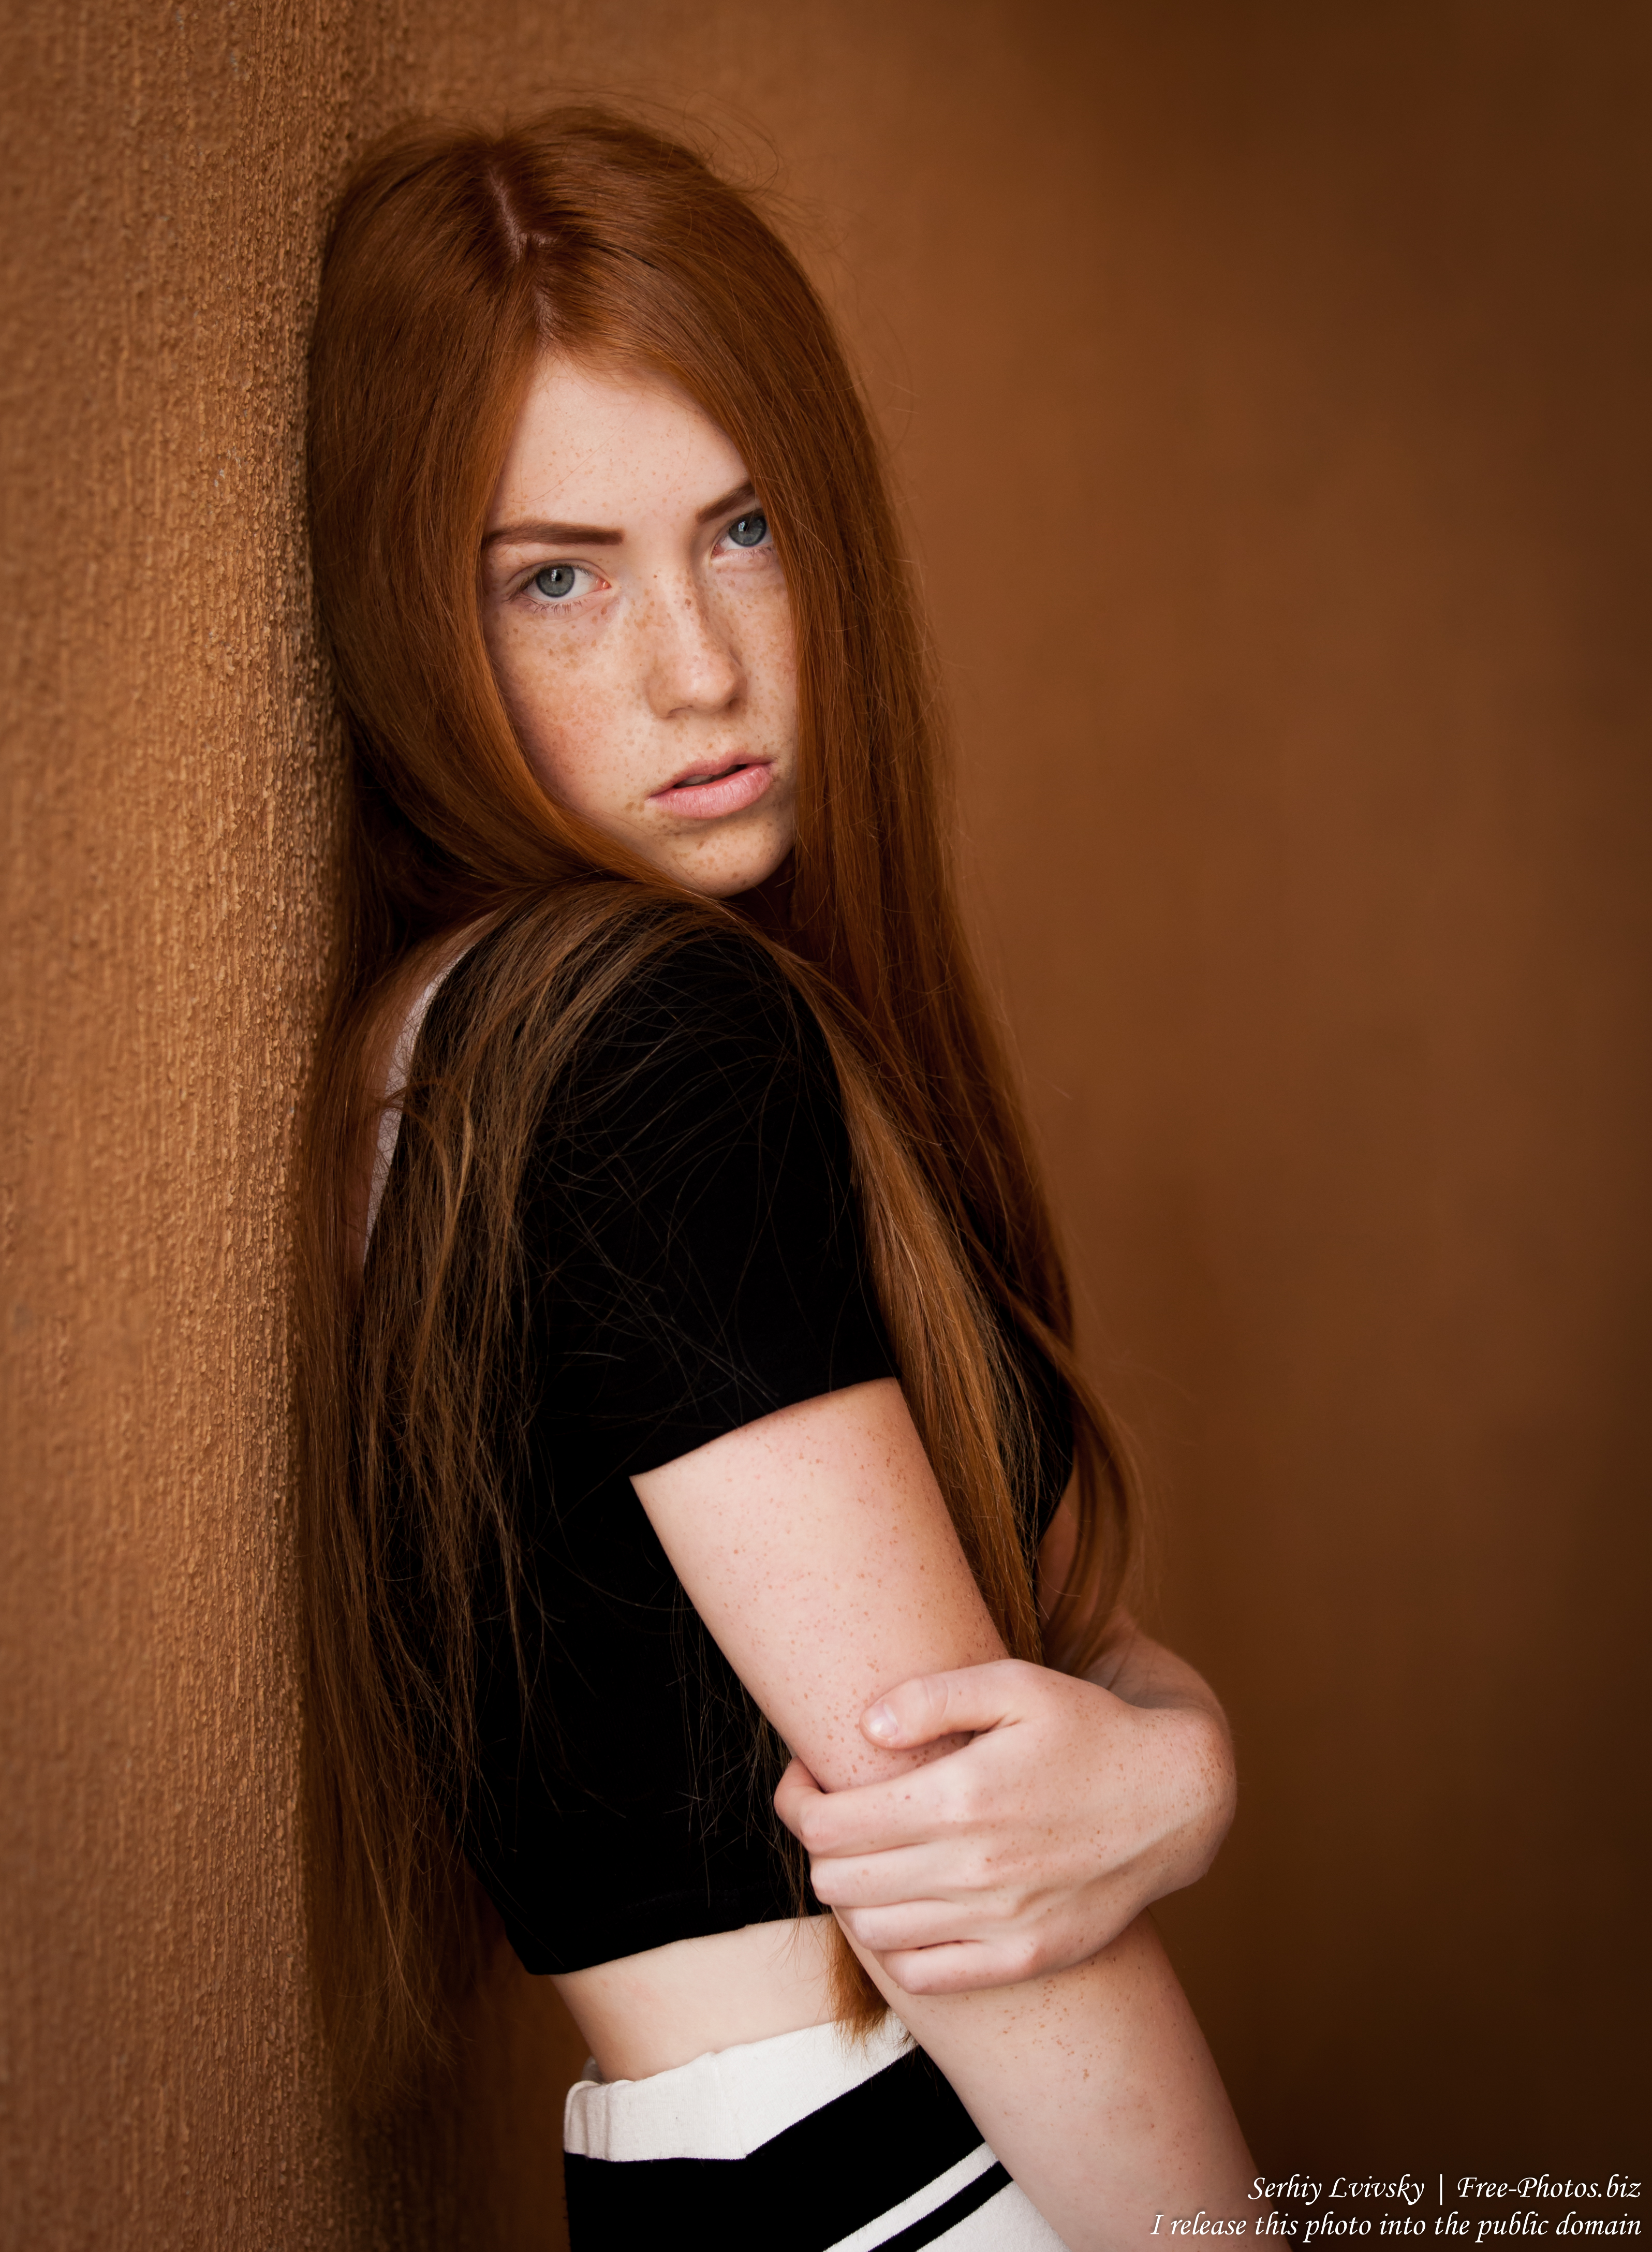 a 15-year-old red-haired Catholic girl photographed by Serhiy Lvivsky in August 2015, picture 16